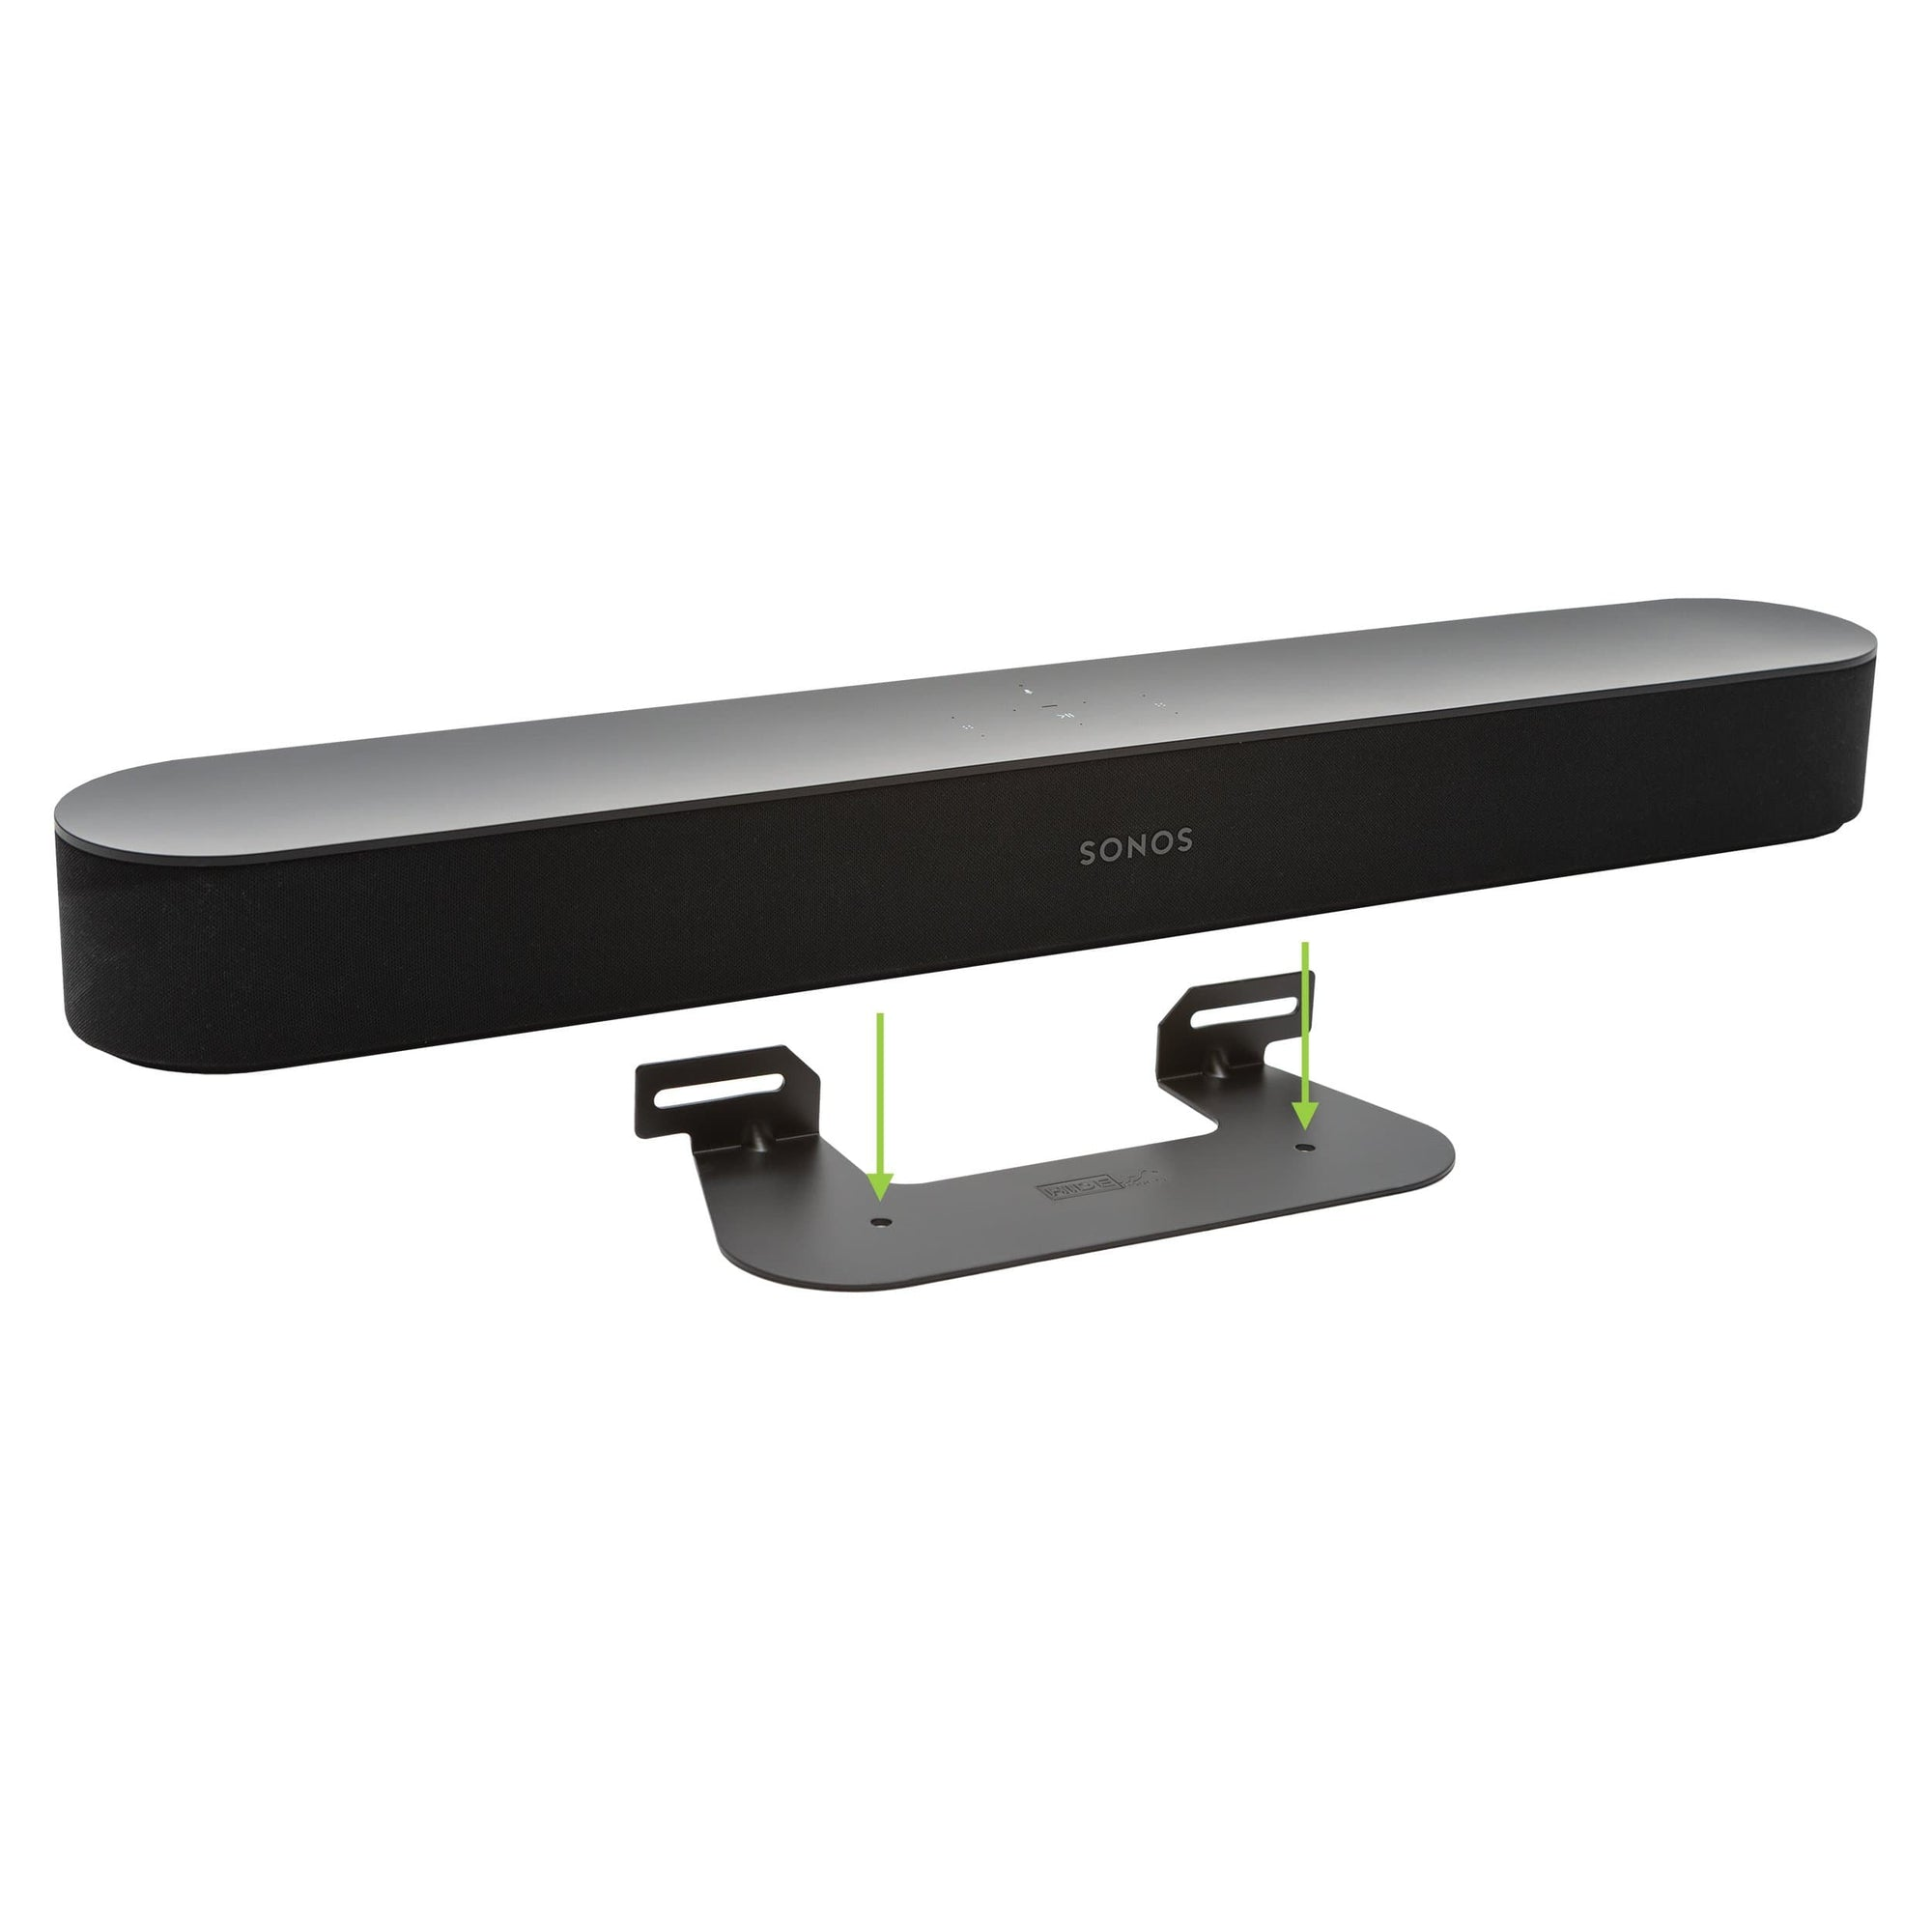 HIDEit Soundbar wall mount designed for the Sonos Beam Soundbar